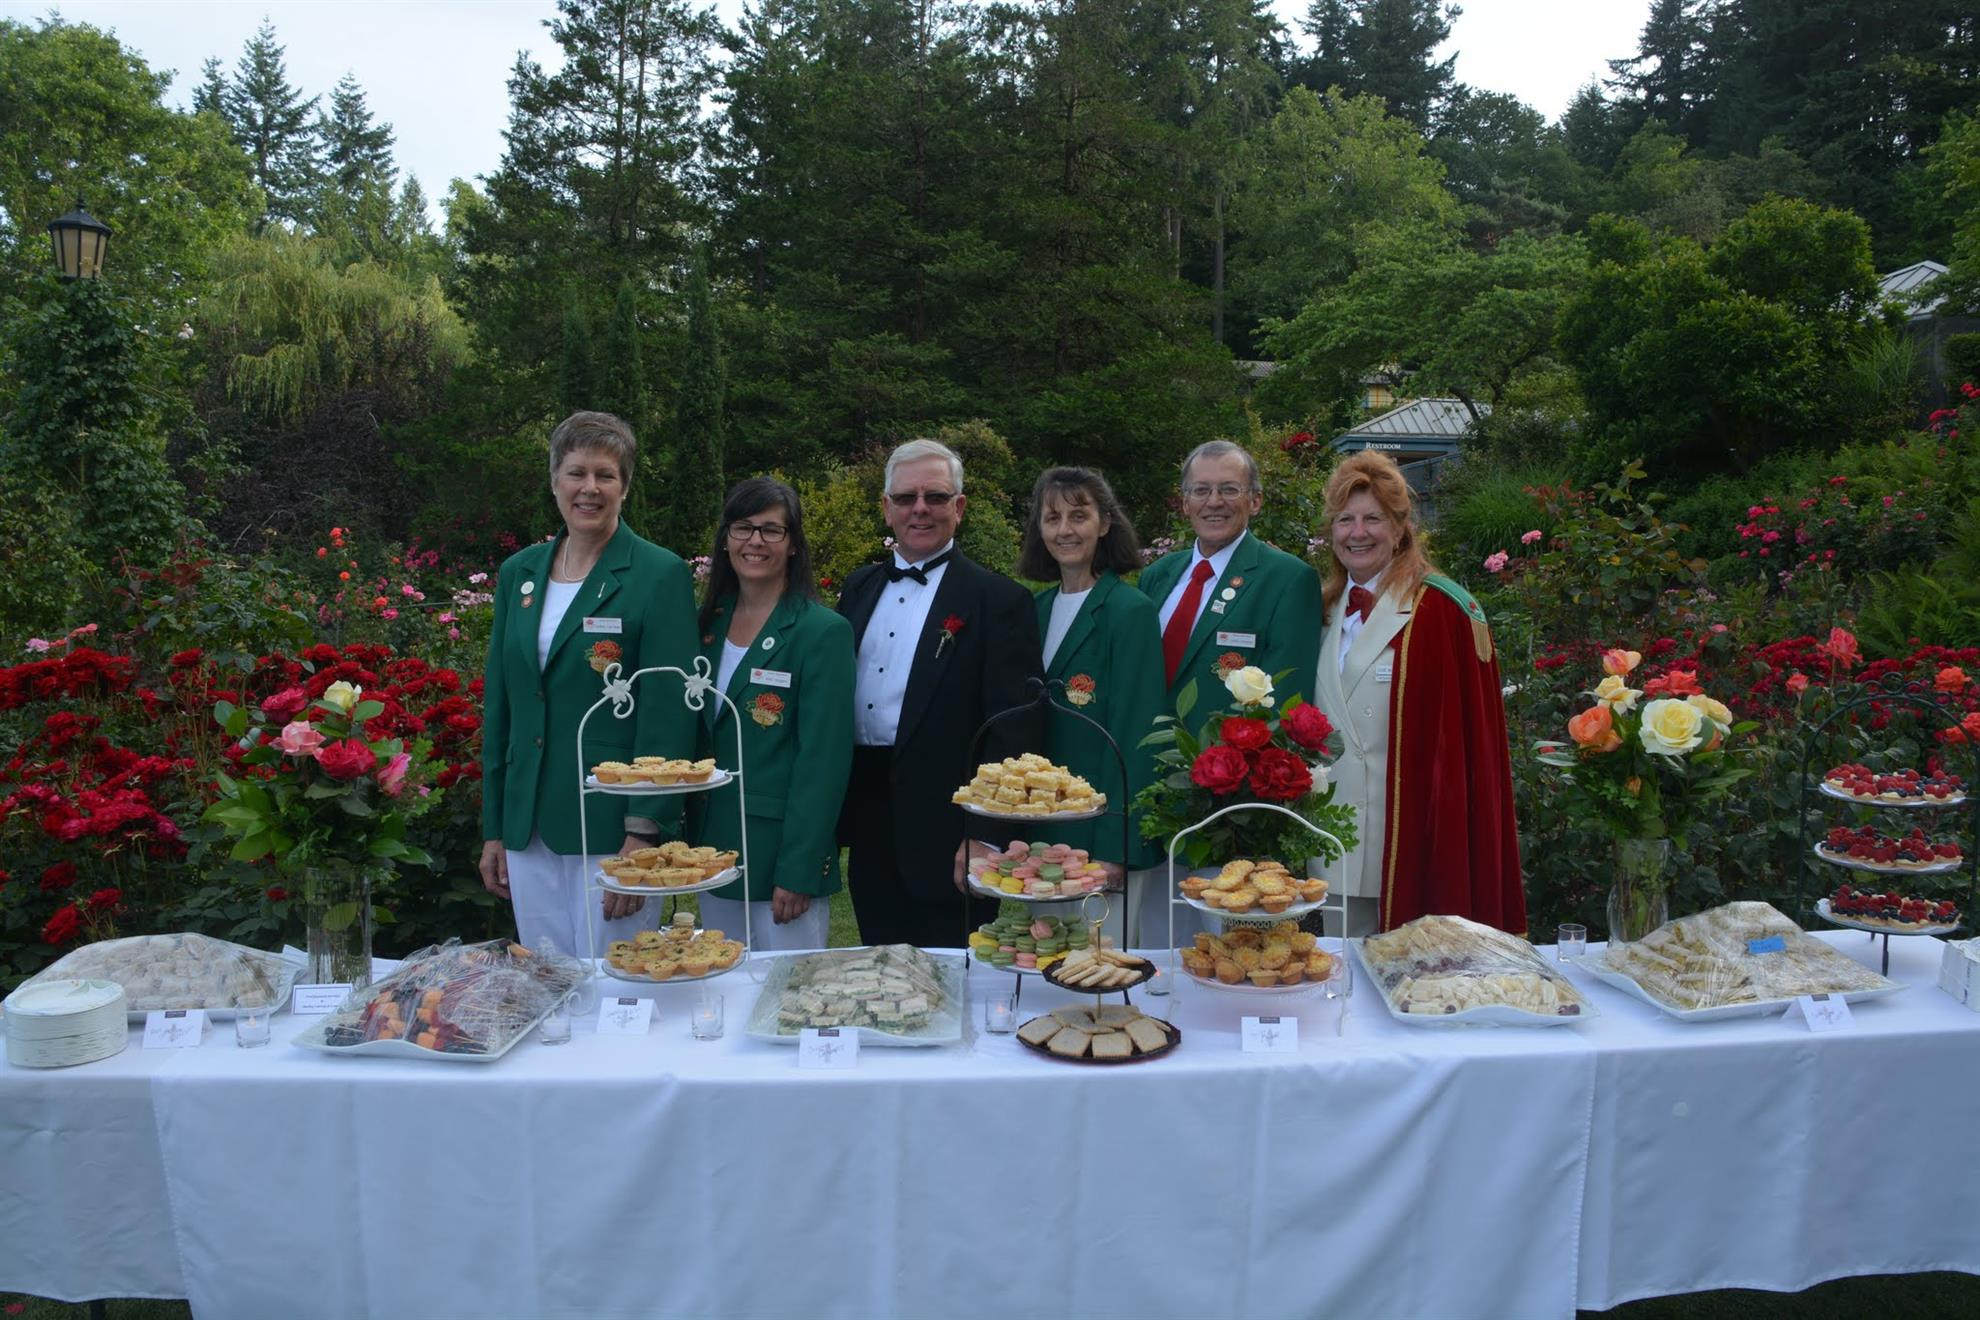 2015 Rose Garden Contest Awards Ceremony | The Royal Rosarians